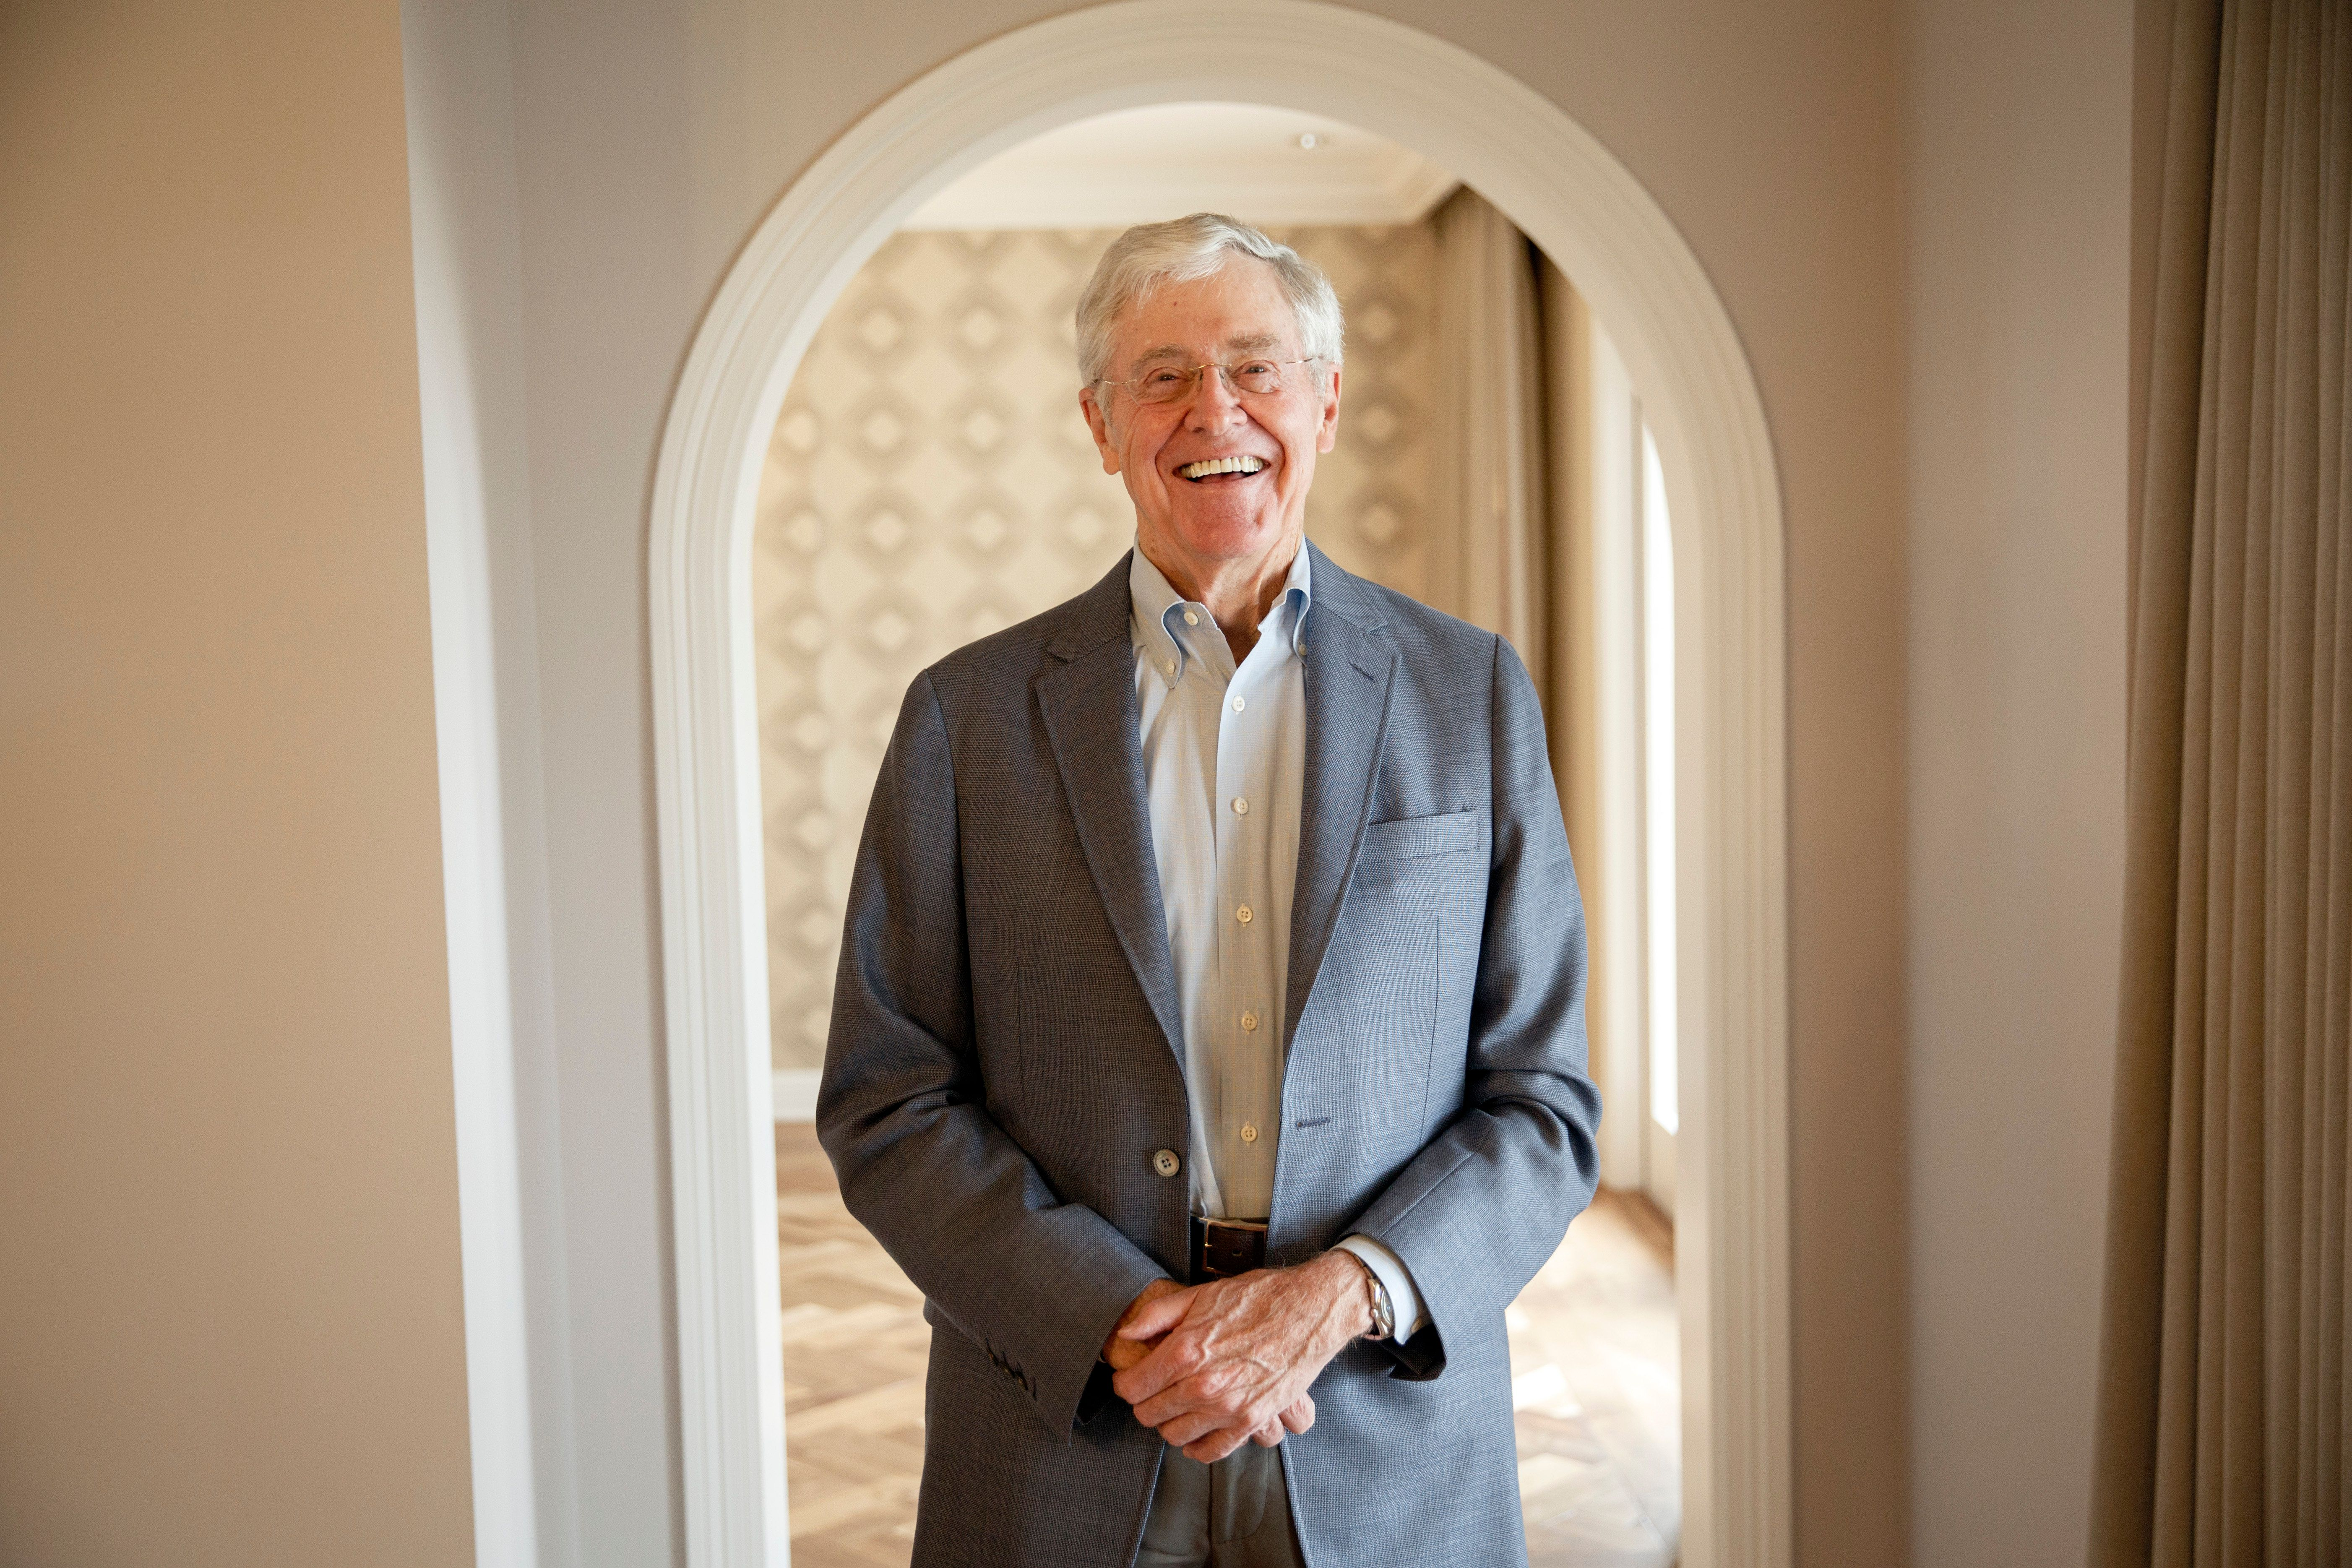 Dana Point, CA - August 3: Charles Koch stands for a portrait after an interview with the Washington Post at the Freedom Partners Summit on Monday, August 3, 2015 in Dana Point, CA. (Photo by Patrick T. Fallon for The Washington Post via Getty Images)